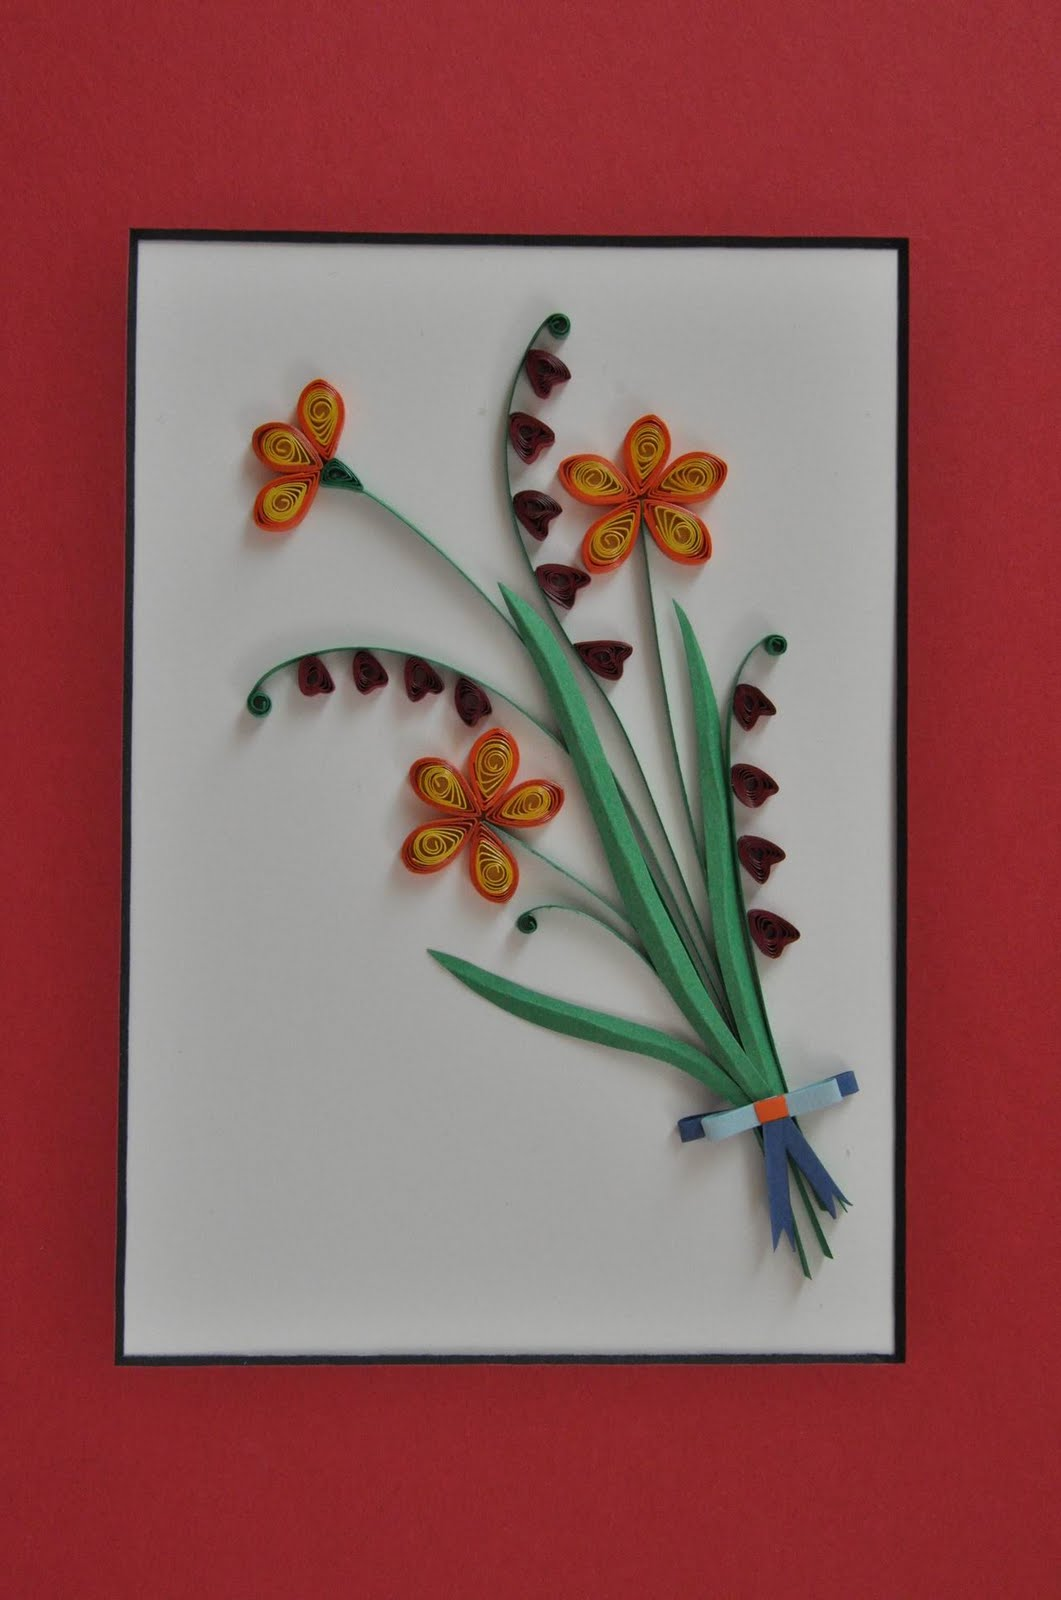 Quilling Wall Art Design : Paper quilling frame designs creative art craft work